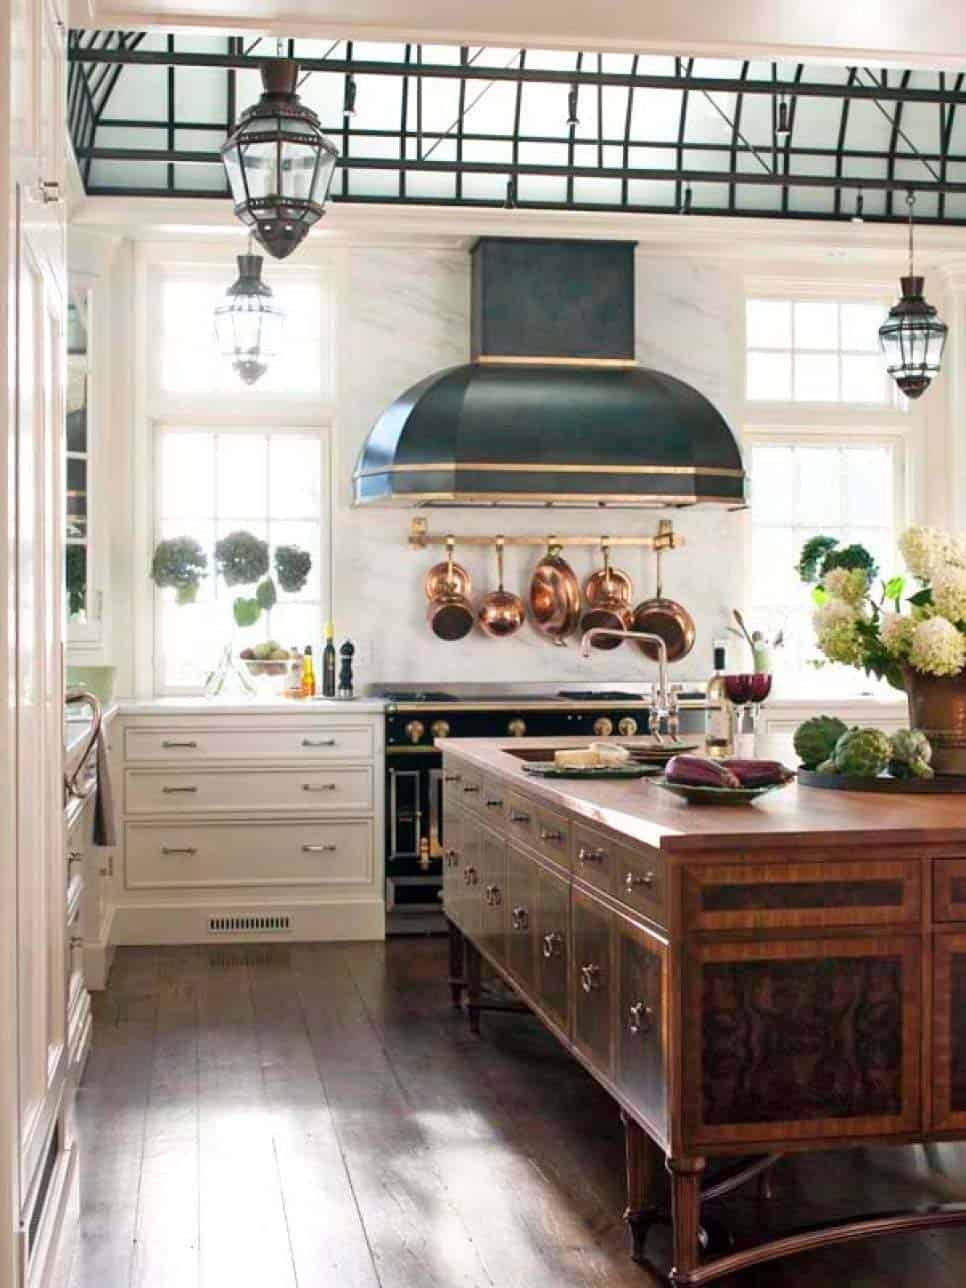 Kitchen Island Ideas-22-1 Kindesign